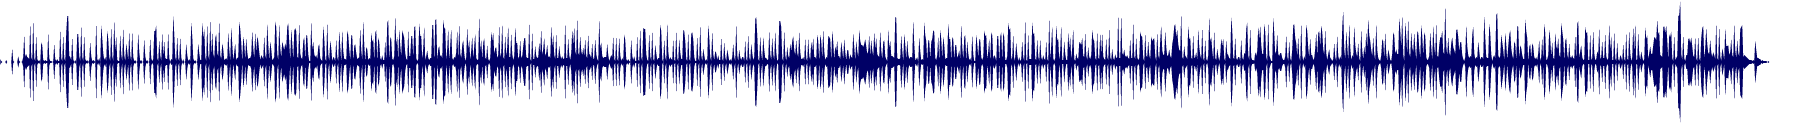 waveform of track #52148